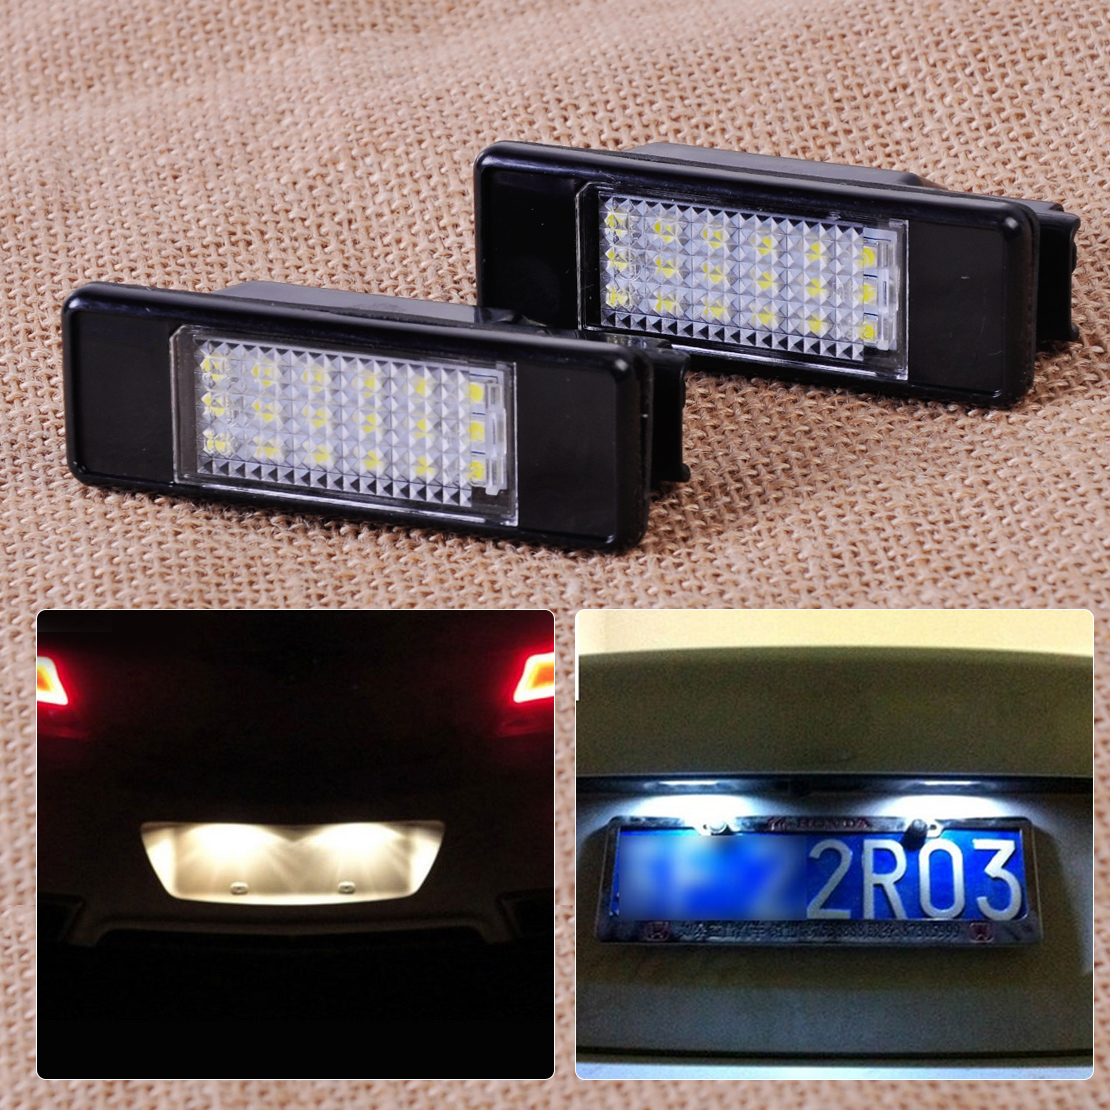 2pcs License Plate Light Lamp 18 LED 6340 G9, 6340 A5, 6340 G3, 6340 F0 for Peugeot 207 308 406 407 Citroen C2 C3 C4 2/3/5-door<br><br>Aliexpress